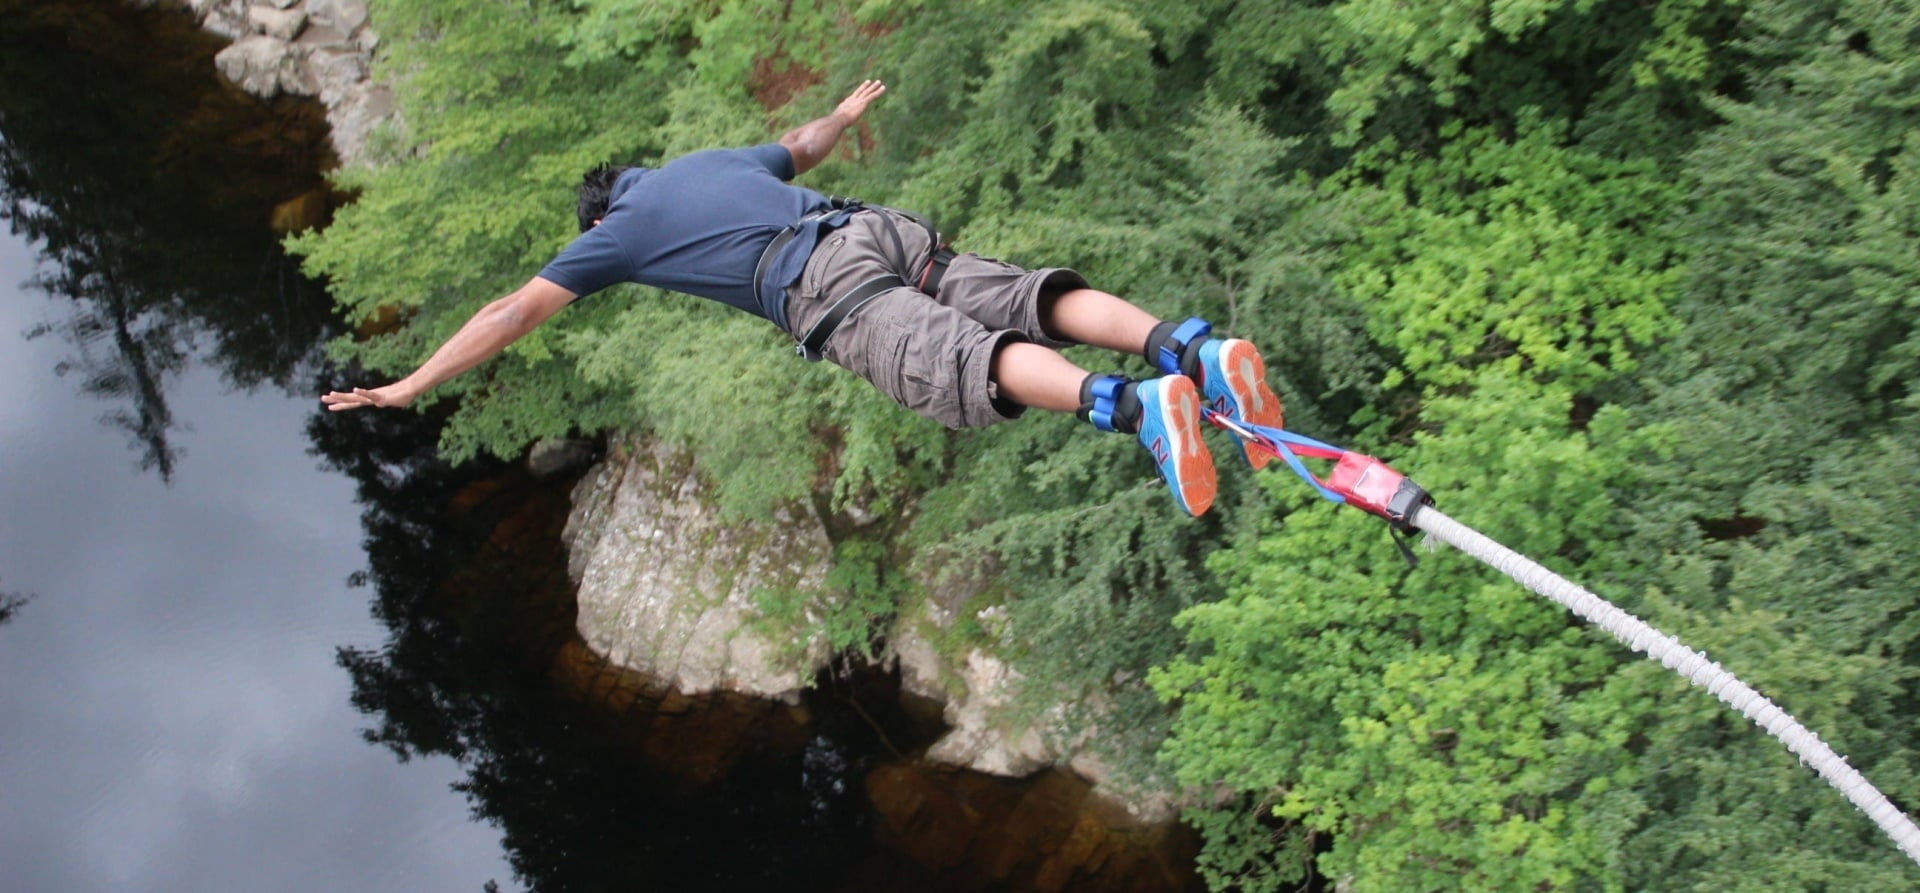 Scotland Bridge Bungee Jump-3